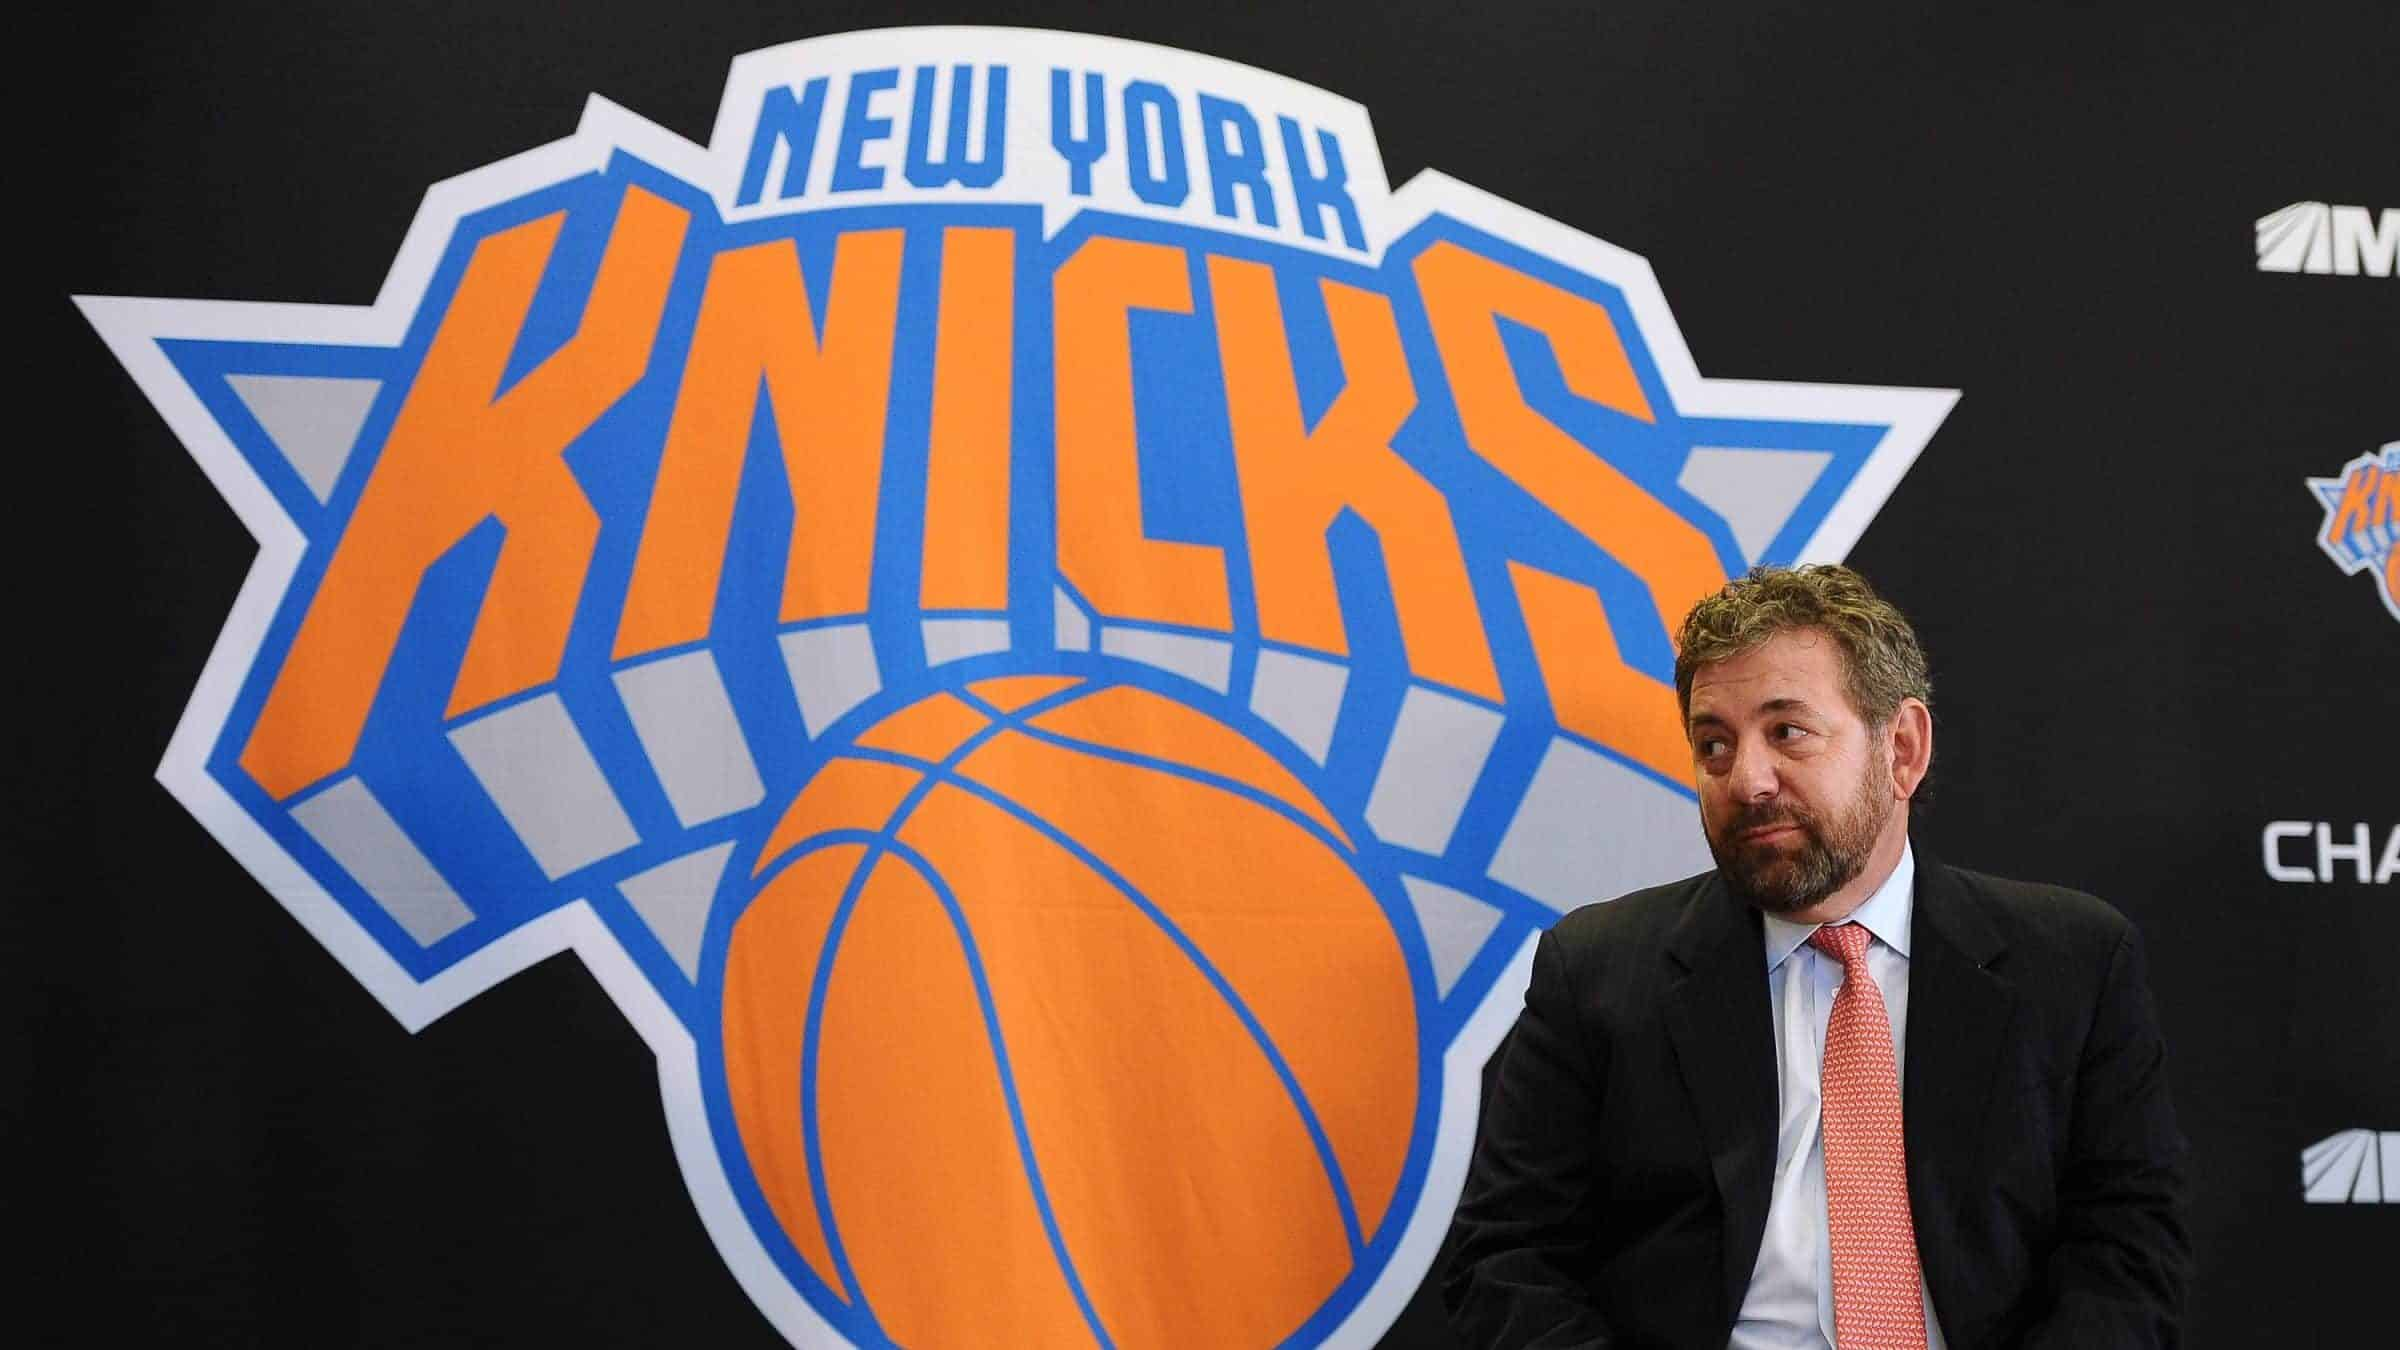 New-york-knicks-press-conference-e1524166580643